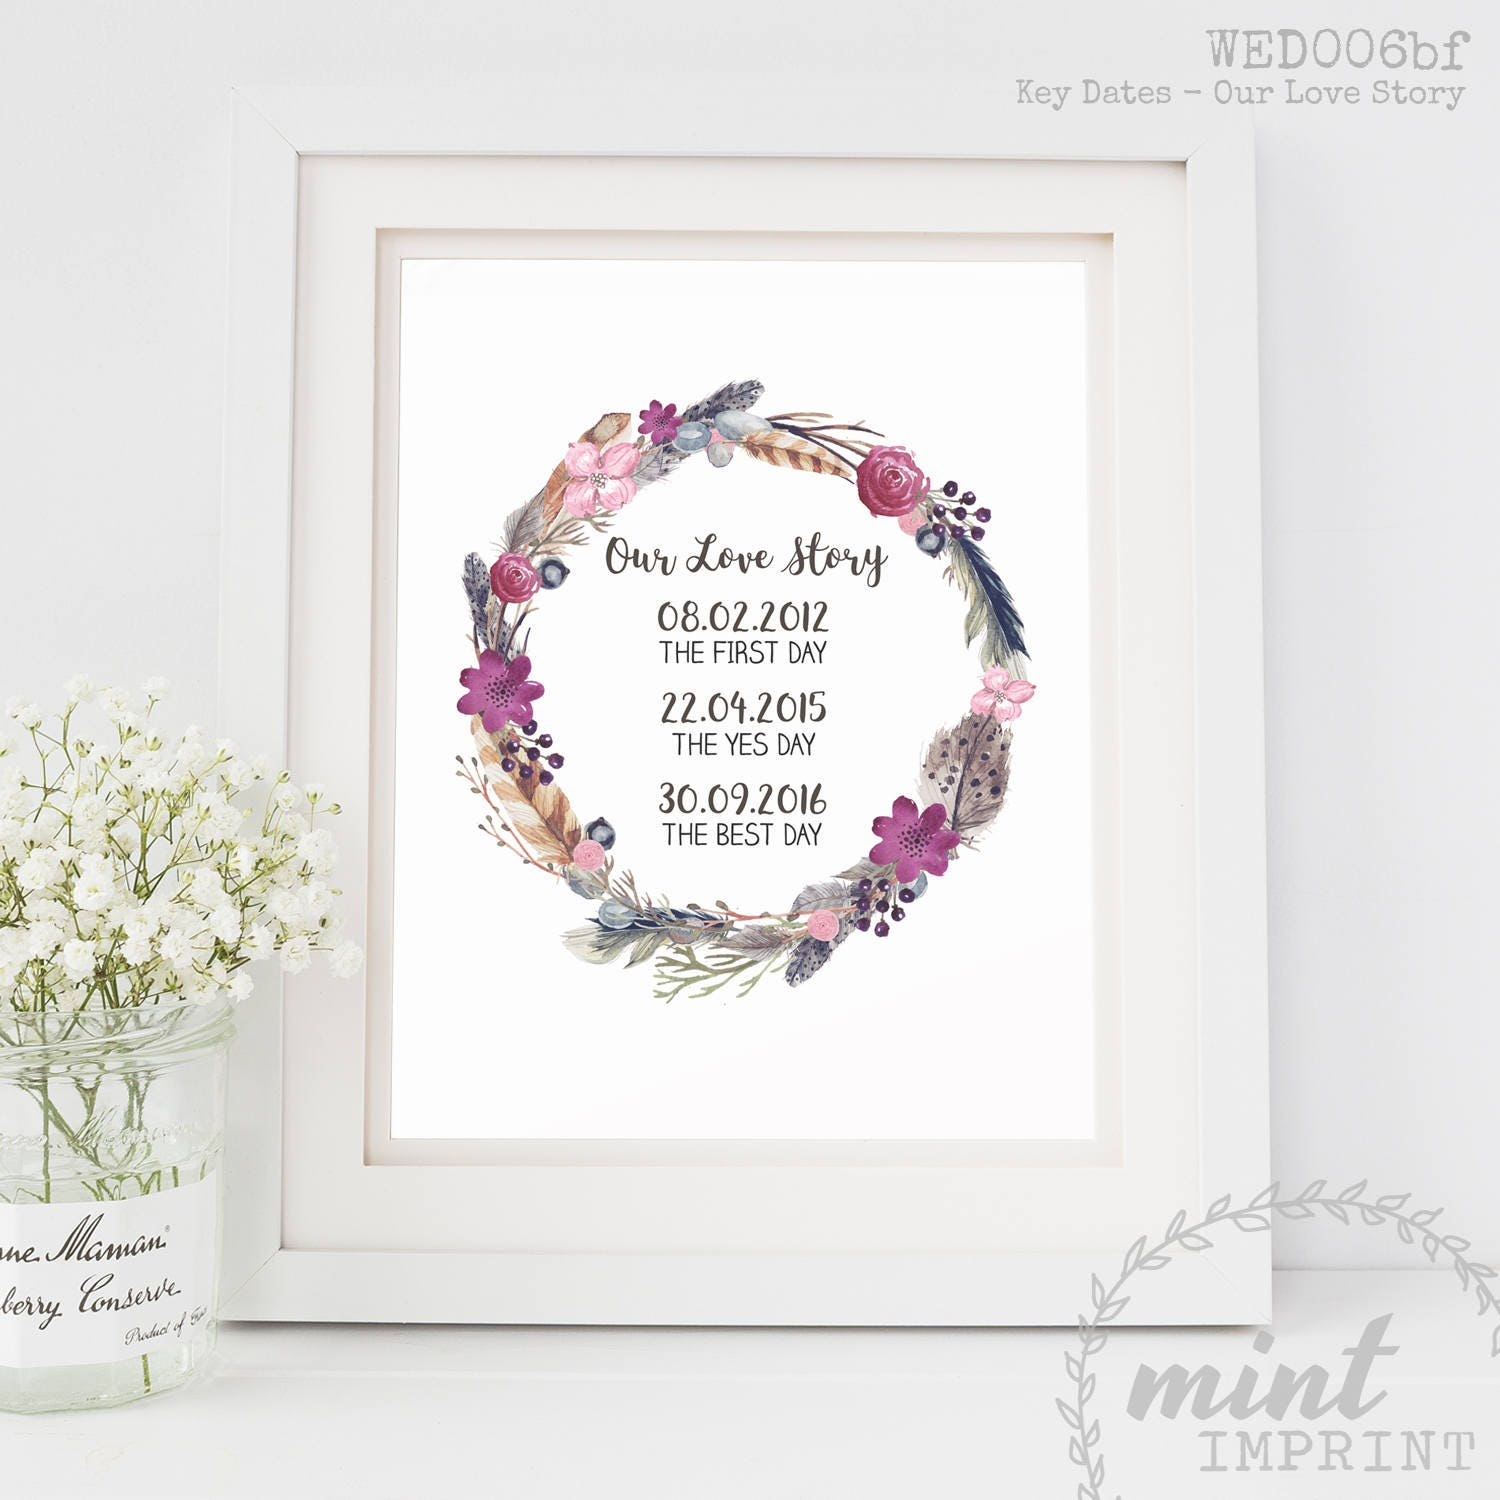 Australian Wedding Anniversary Gifts By Year: Our Love Story Keepsake Print / Wedding Anniversary Gift